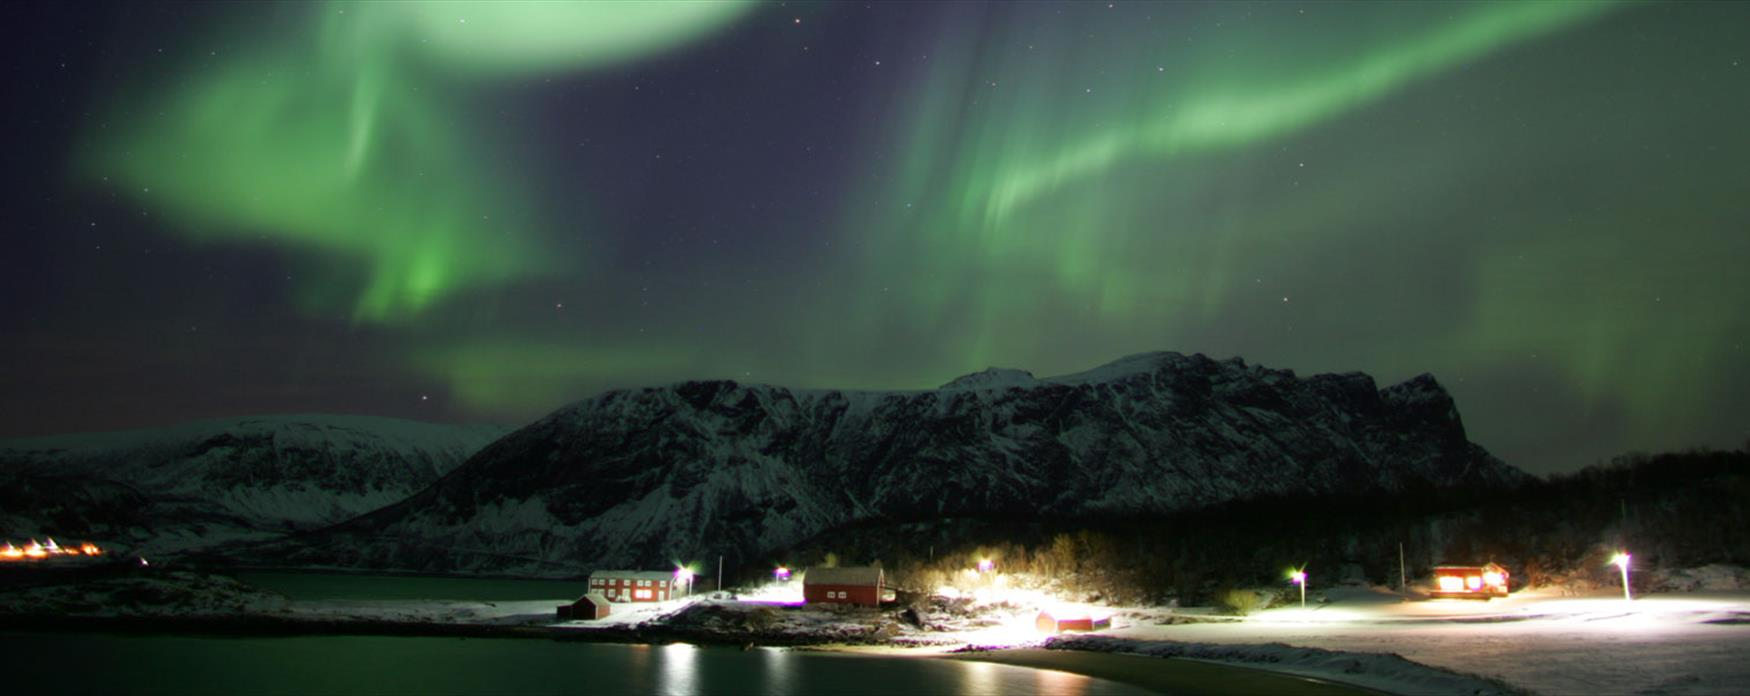 Northern lights in Harstad